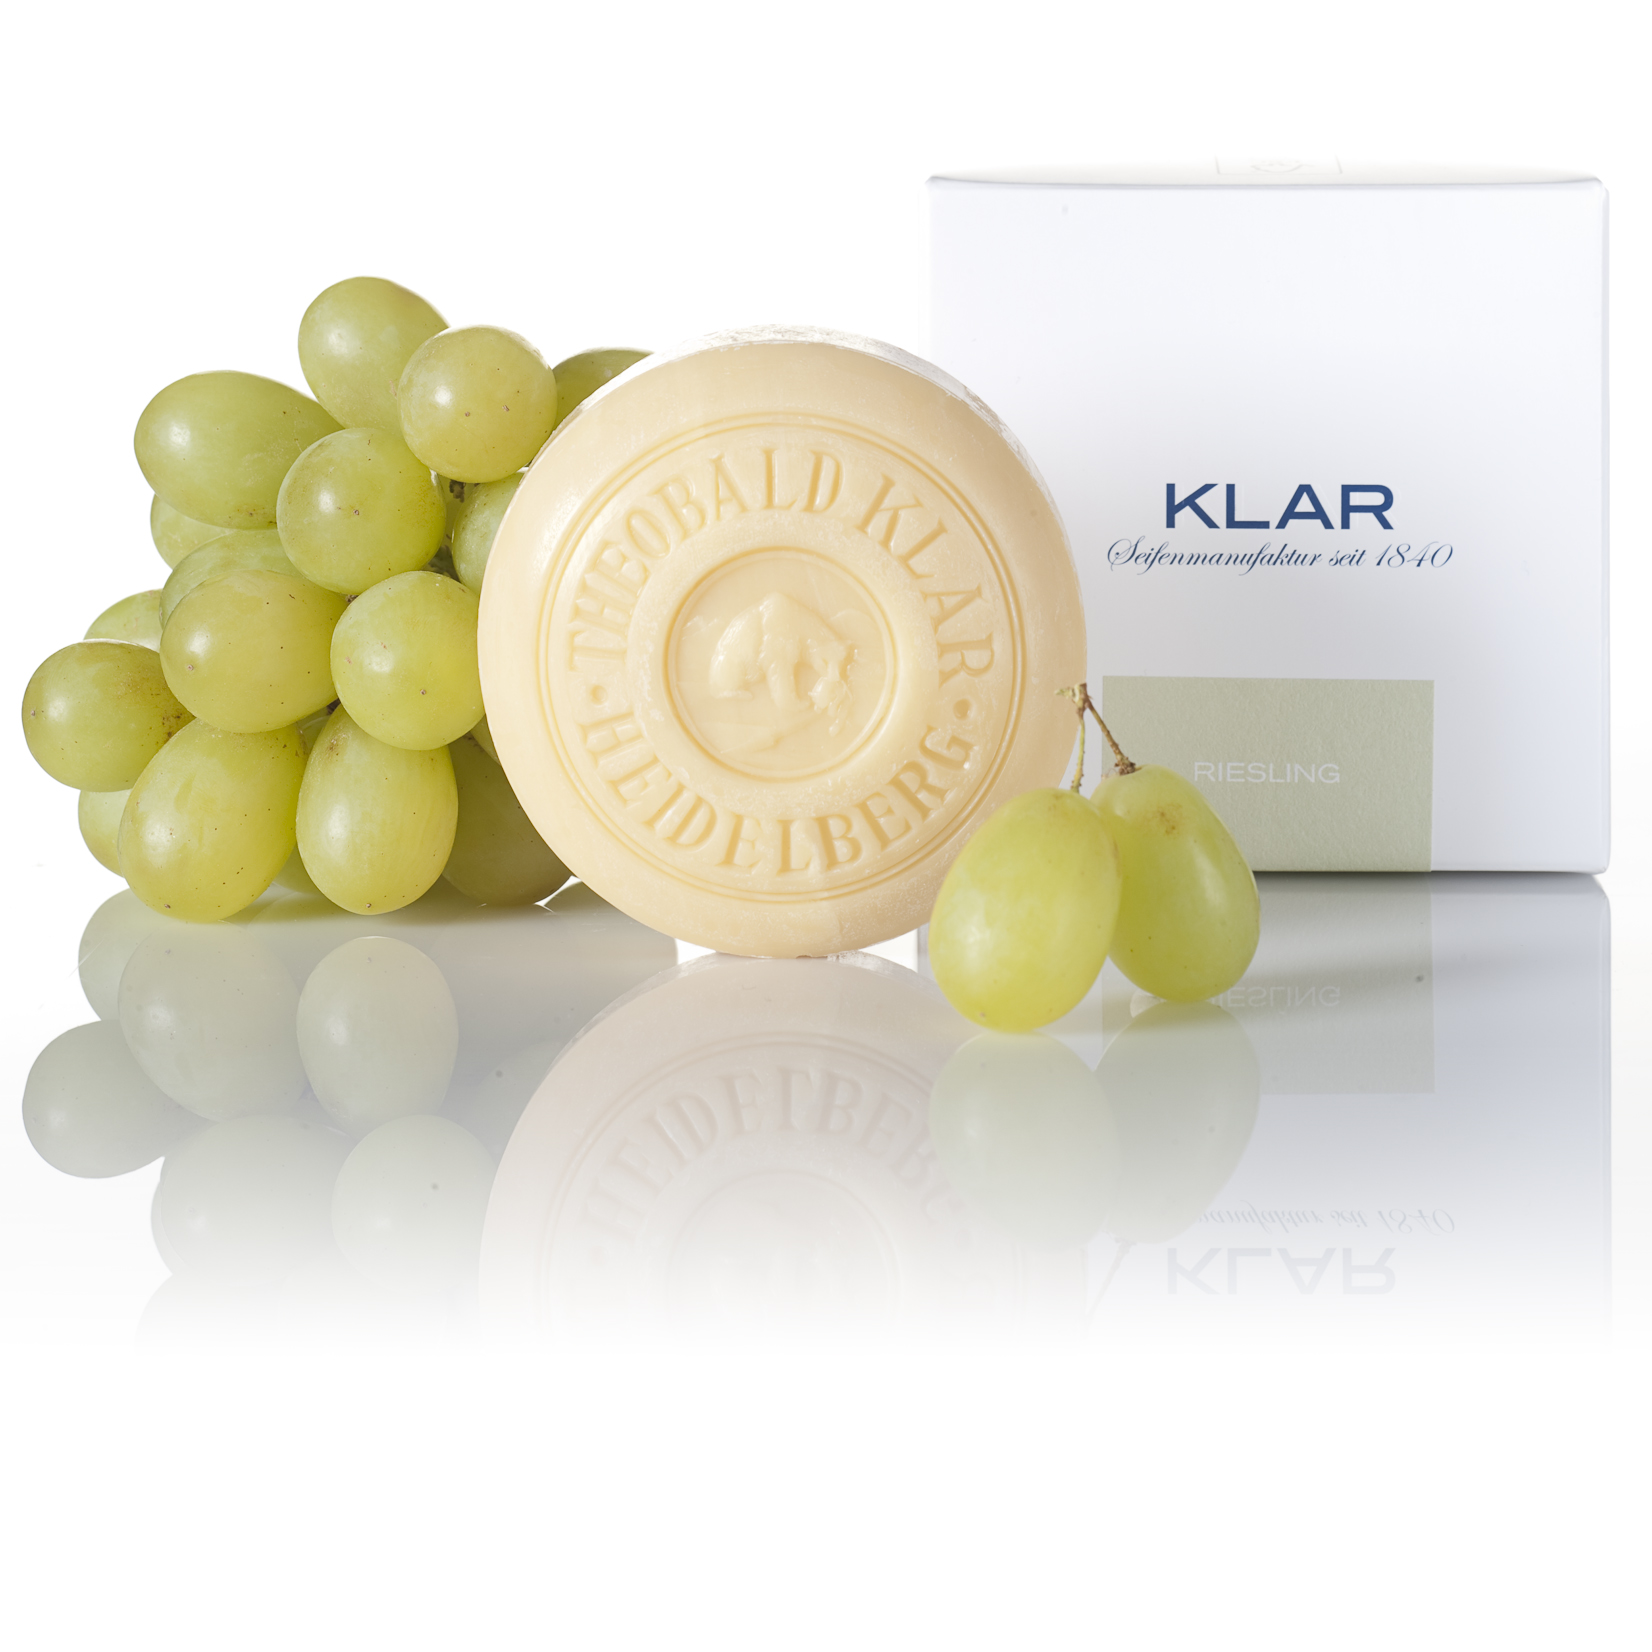 Klar Riesling White Wine Soap 150g